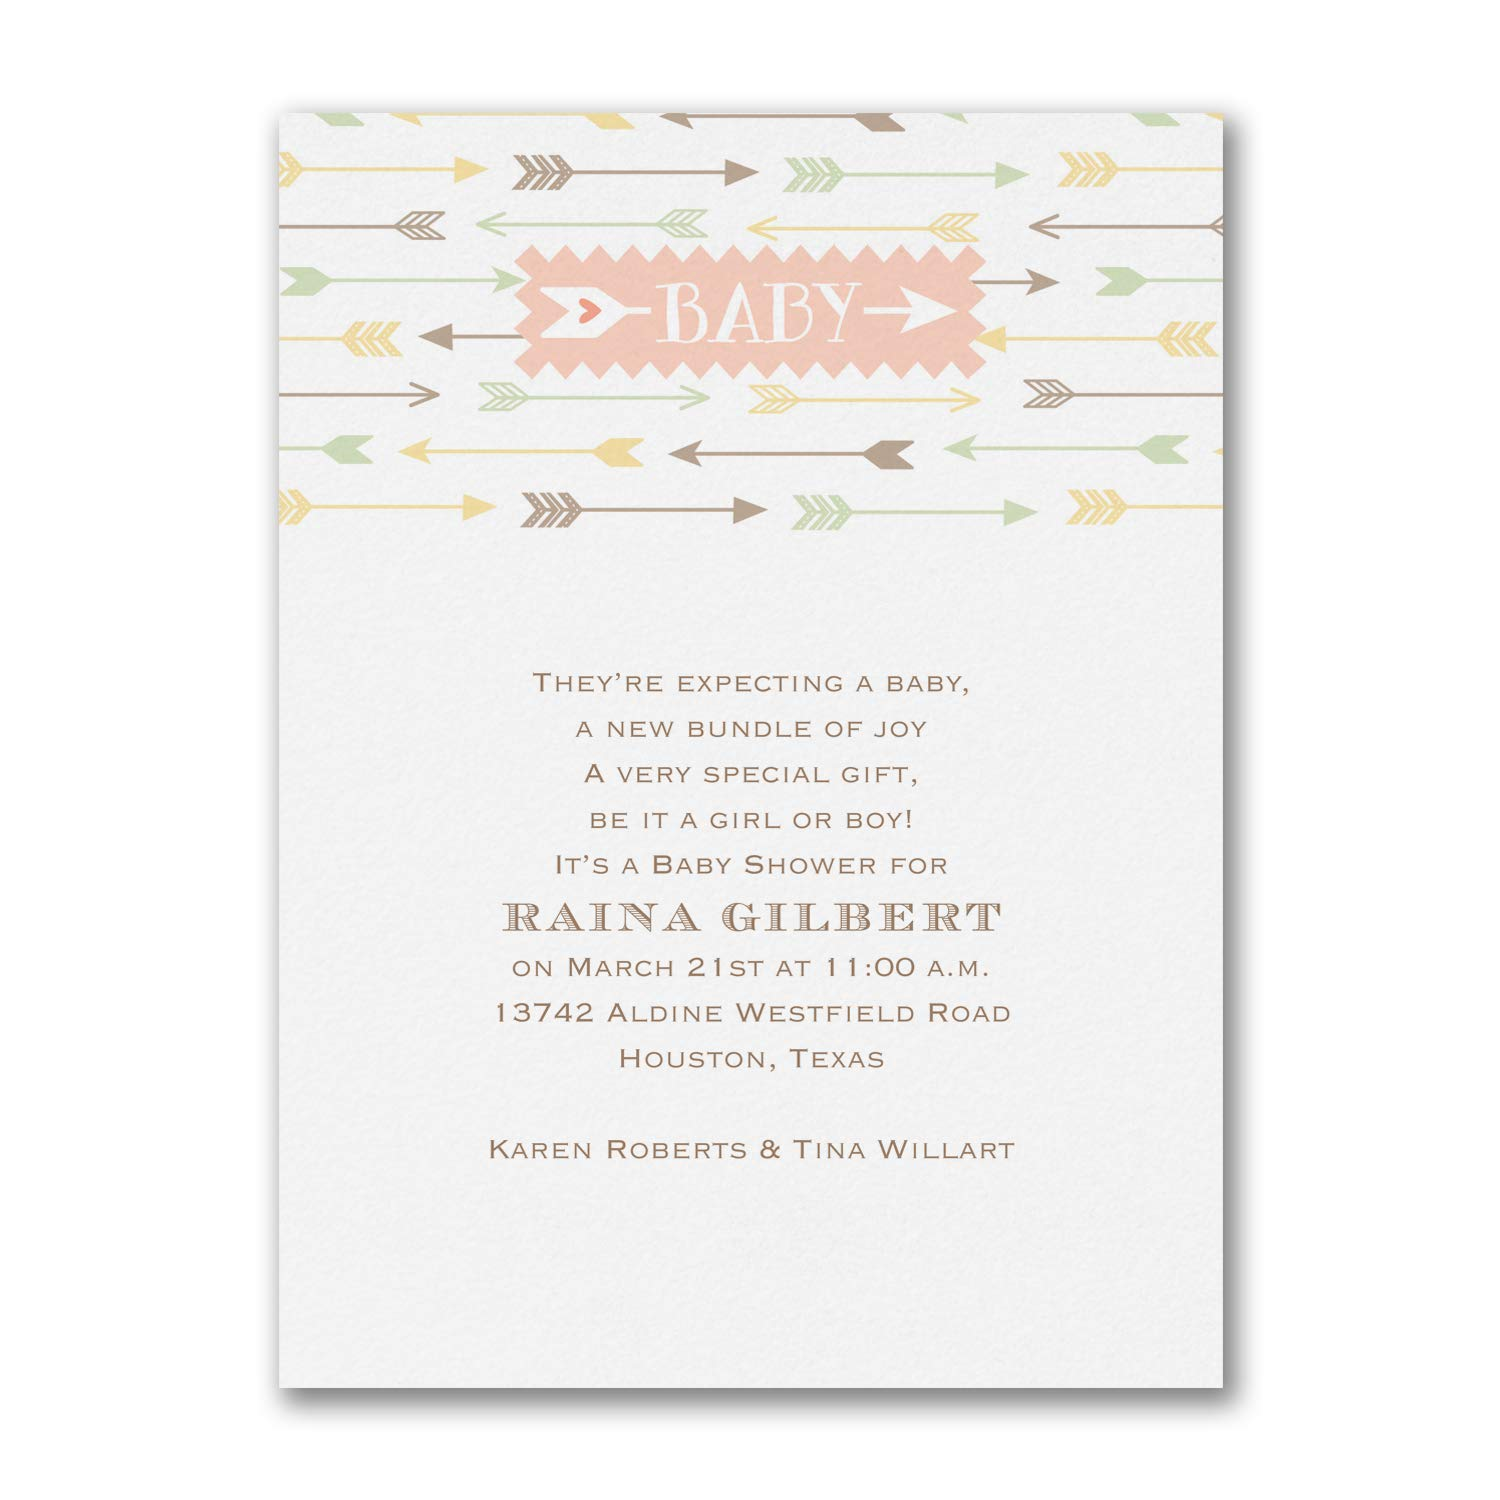 425pk Little Arrows - Baby Shower Invitation-Shop All Baby